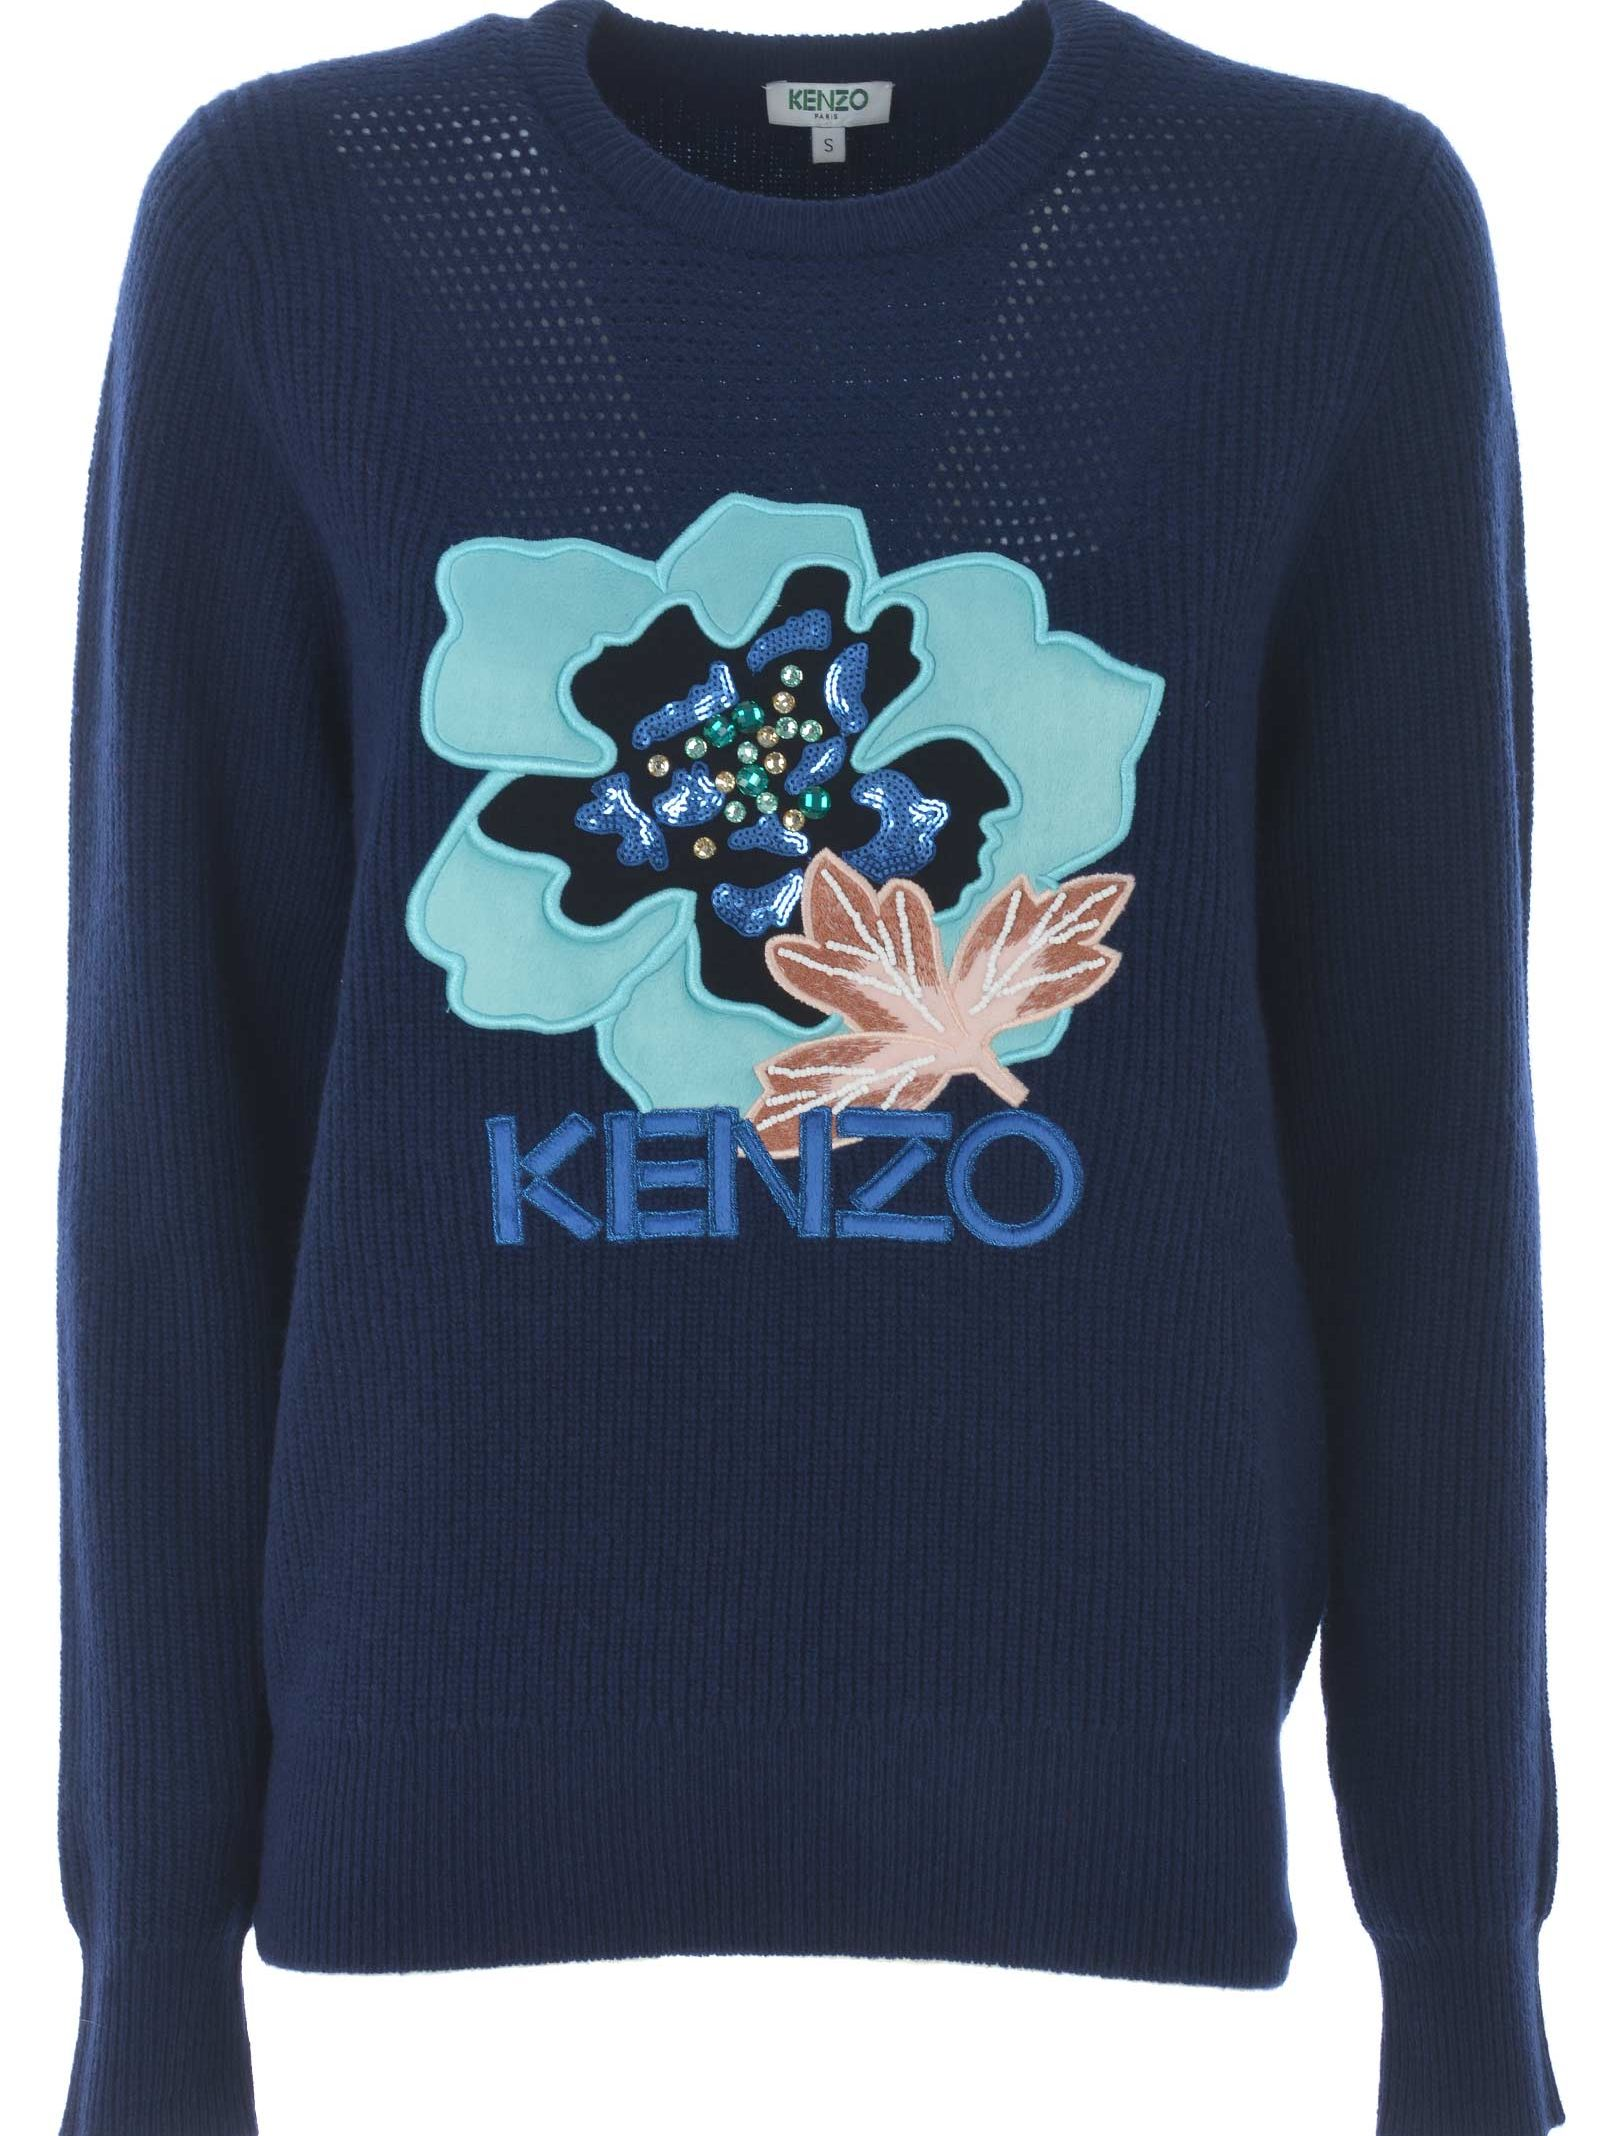 KENZO   Kenzo Embroidered Sweater   Clouty